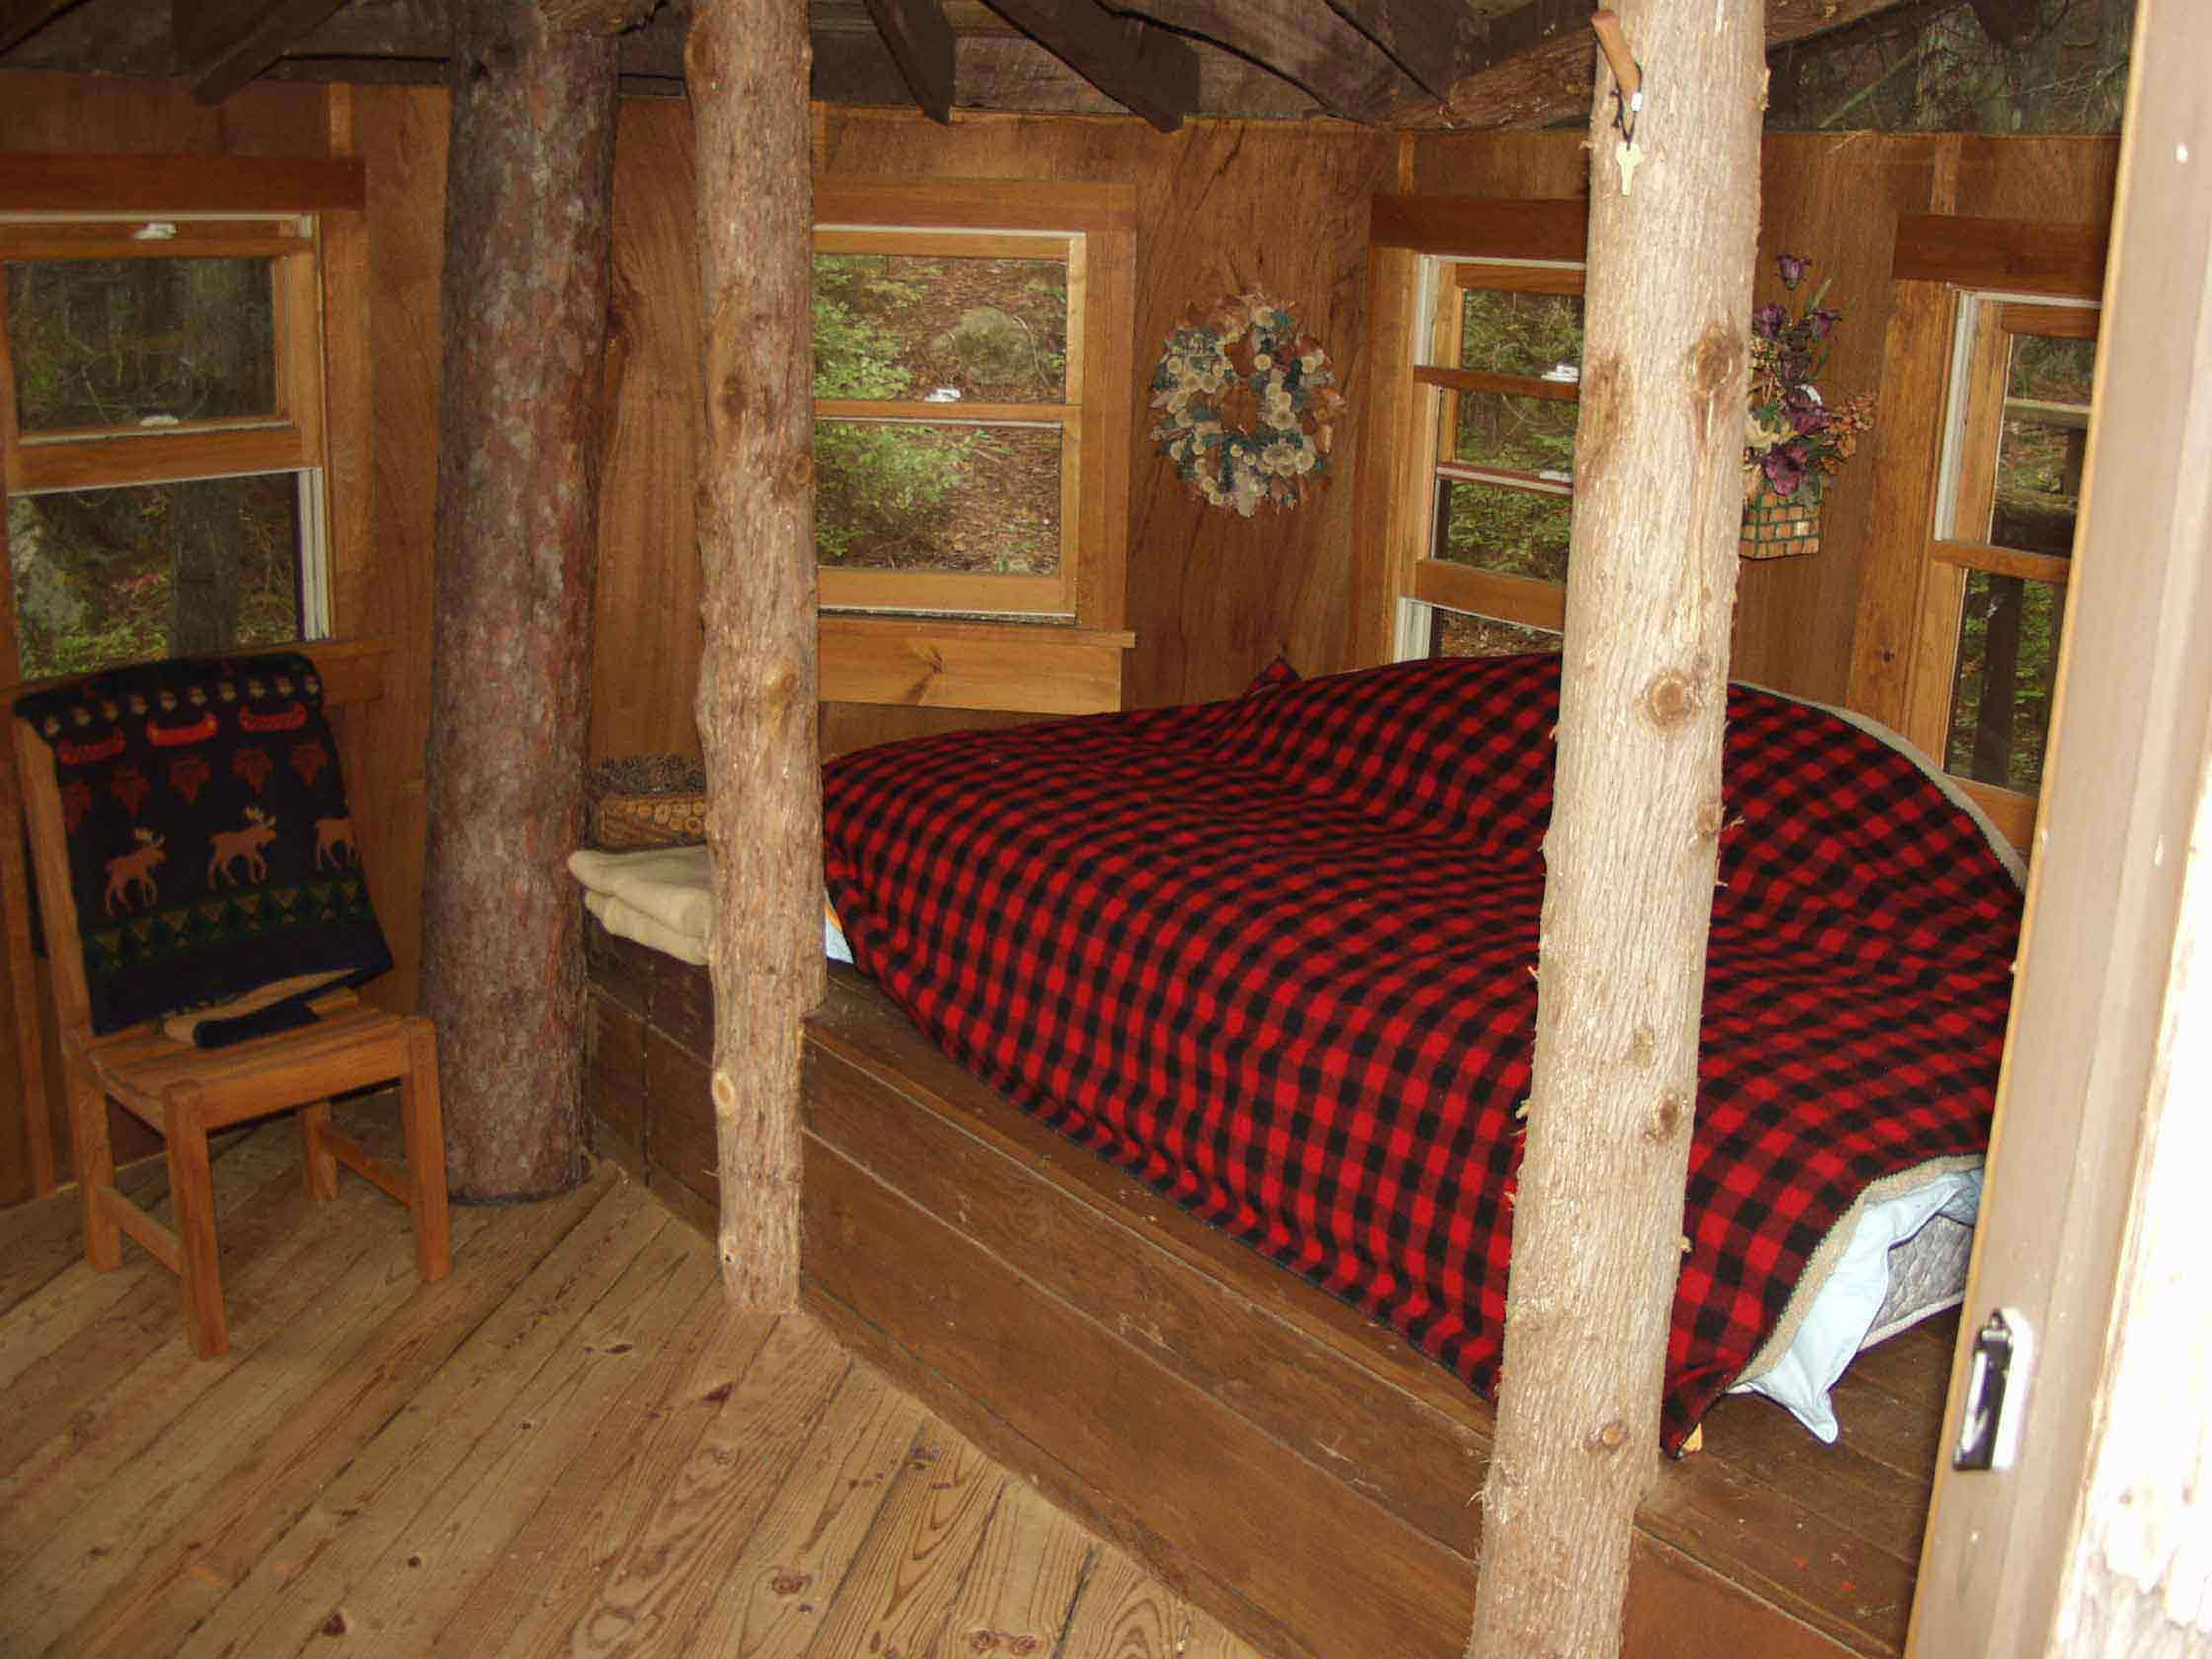 rentals historic weimer adirondack cabins oldforge adirondacks lodge at getaway the fieldstone cabin